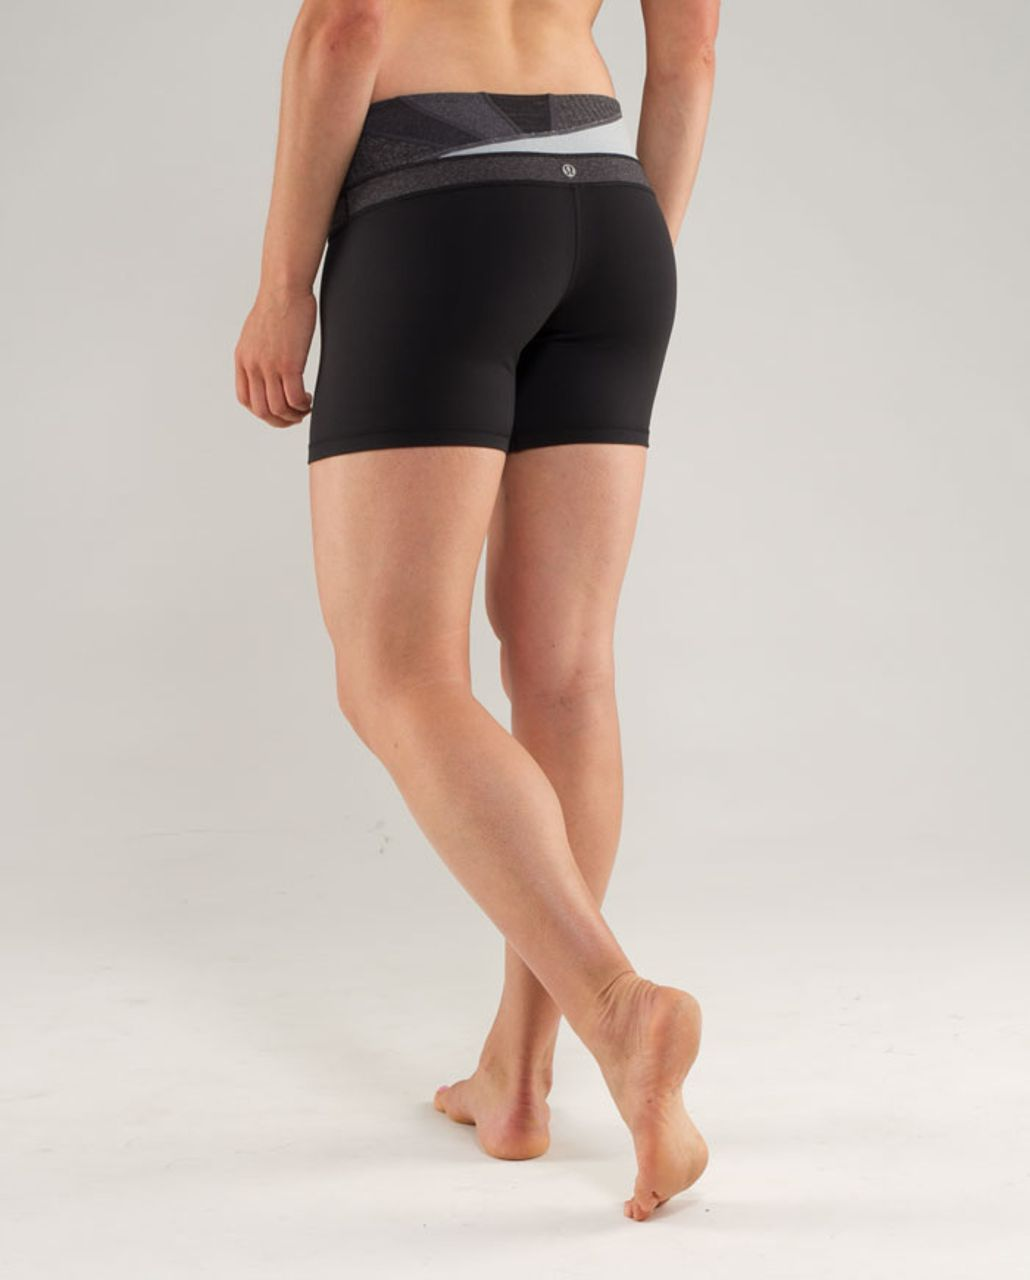 Lululemon Groove Short - Black /  Quilting Winter 2 /  Quilting Winter 2